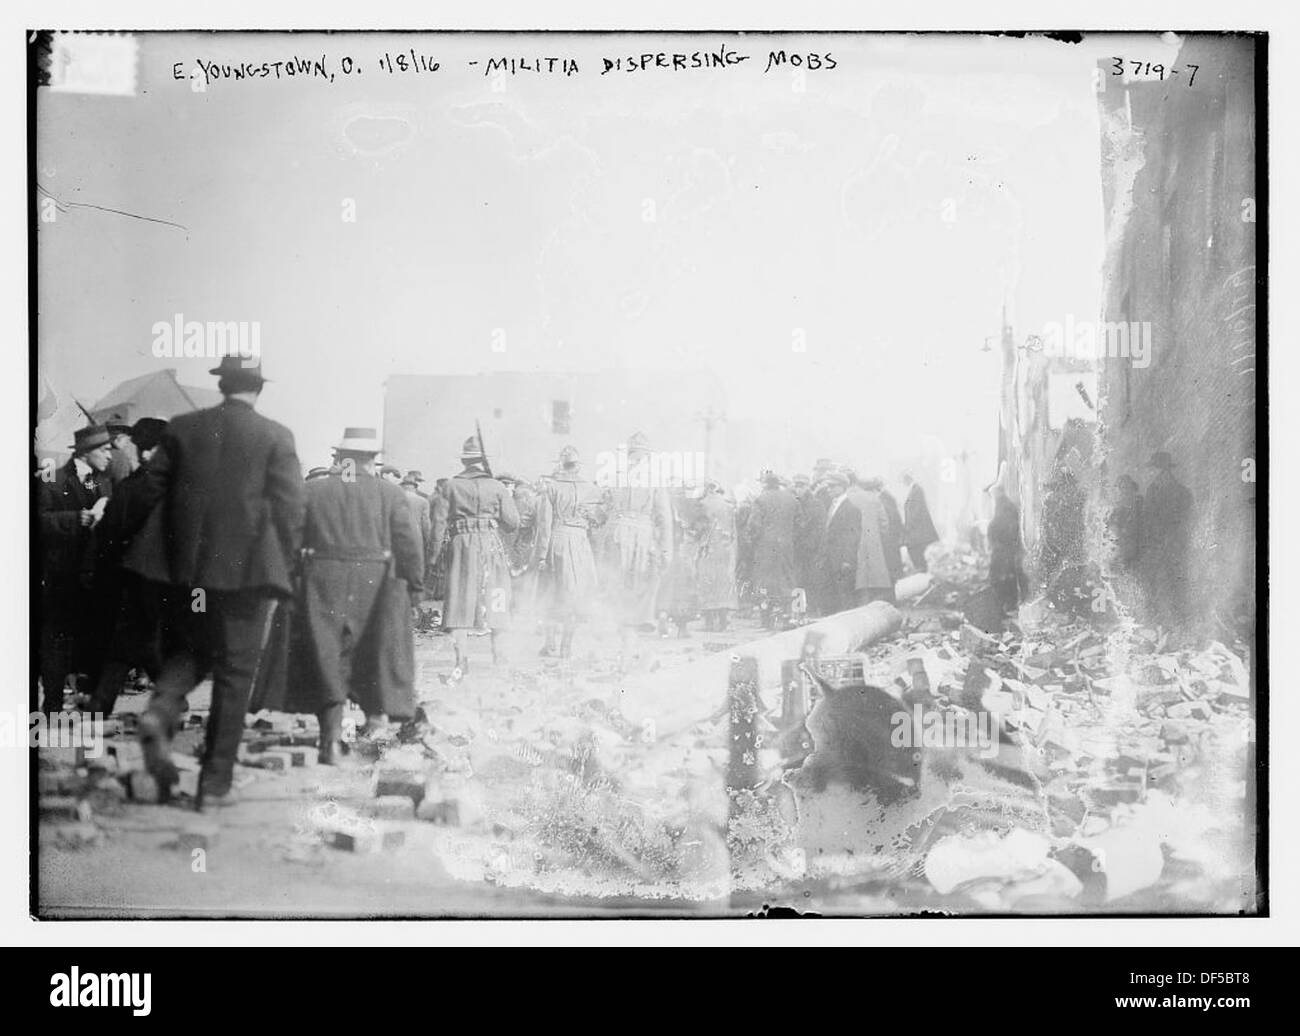 E. Youngstown, O., 1/8/16 -- Militia Dispersing mobs (LOC) - Stock Image